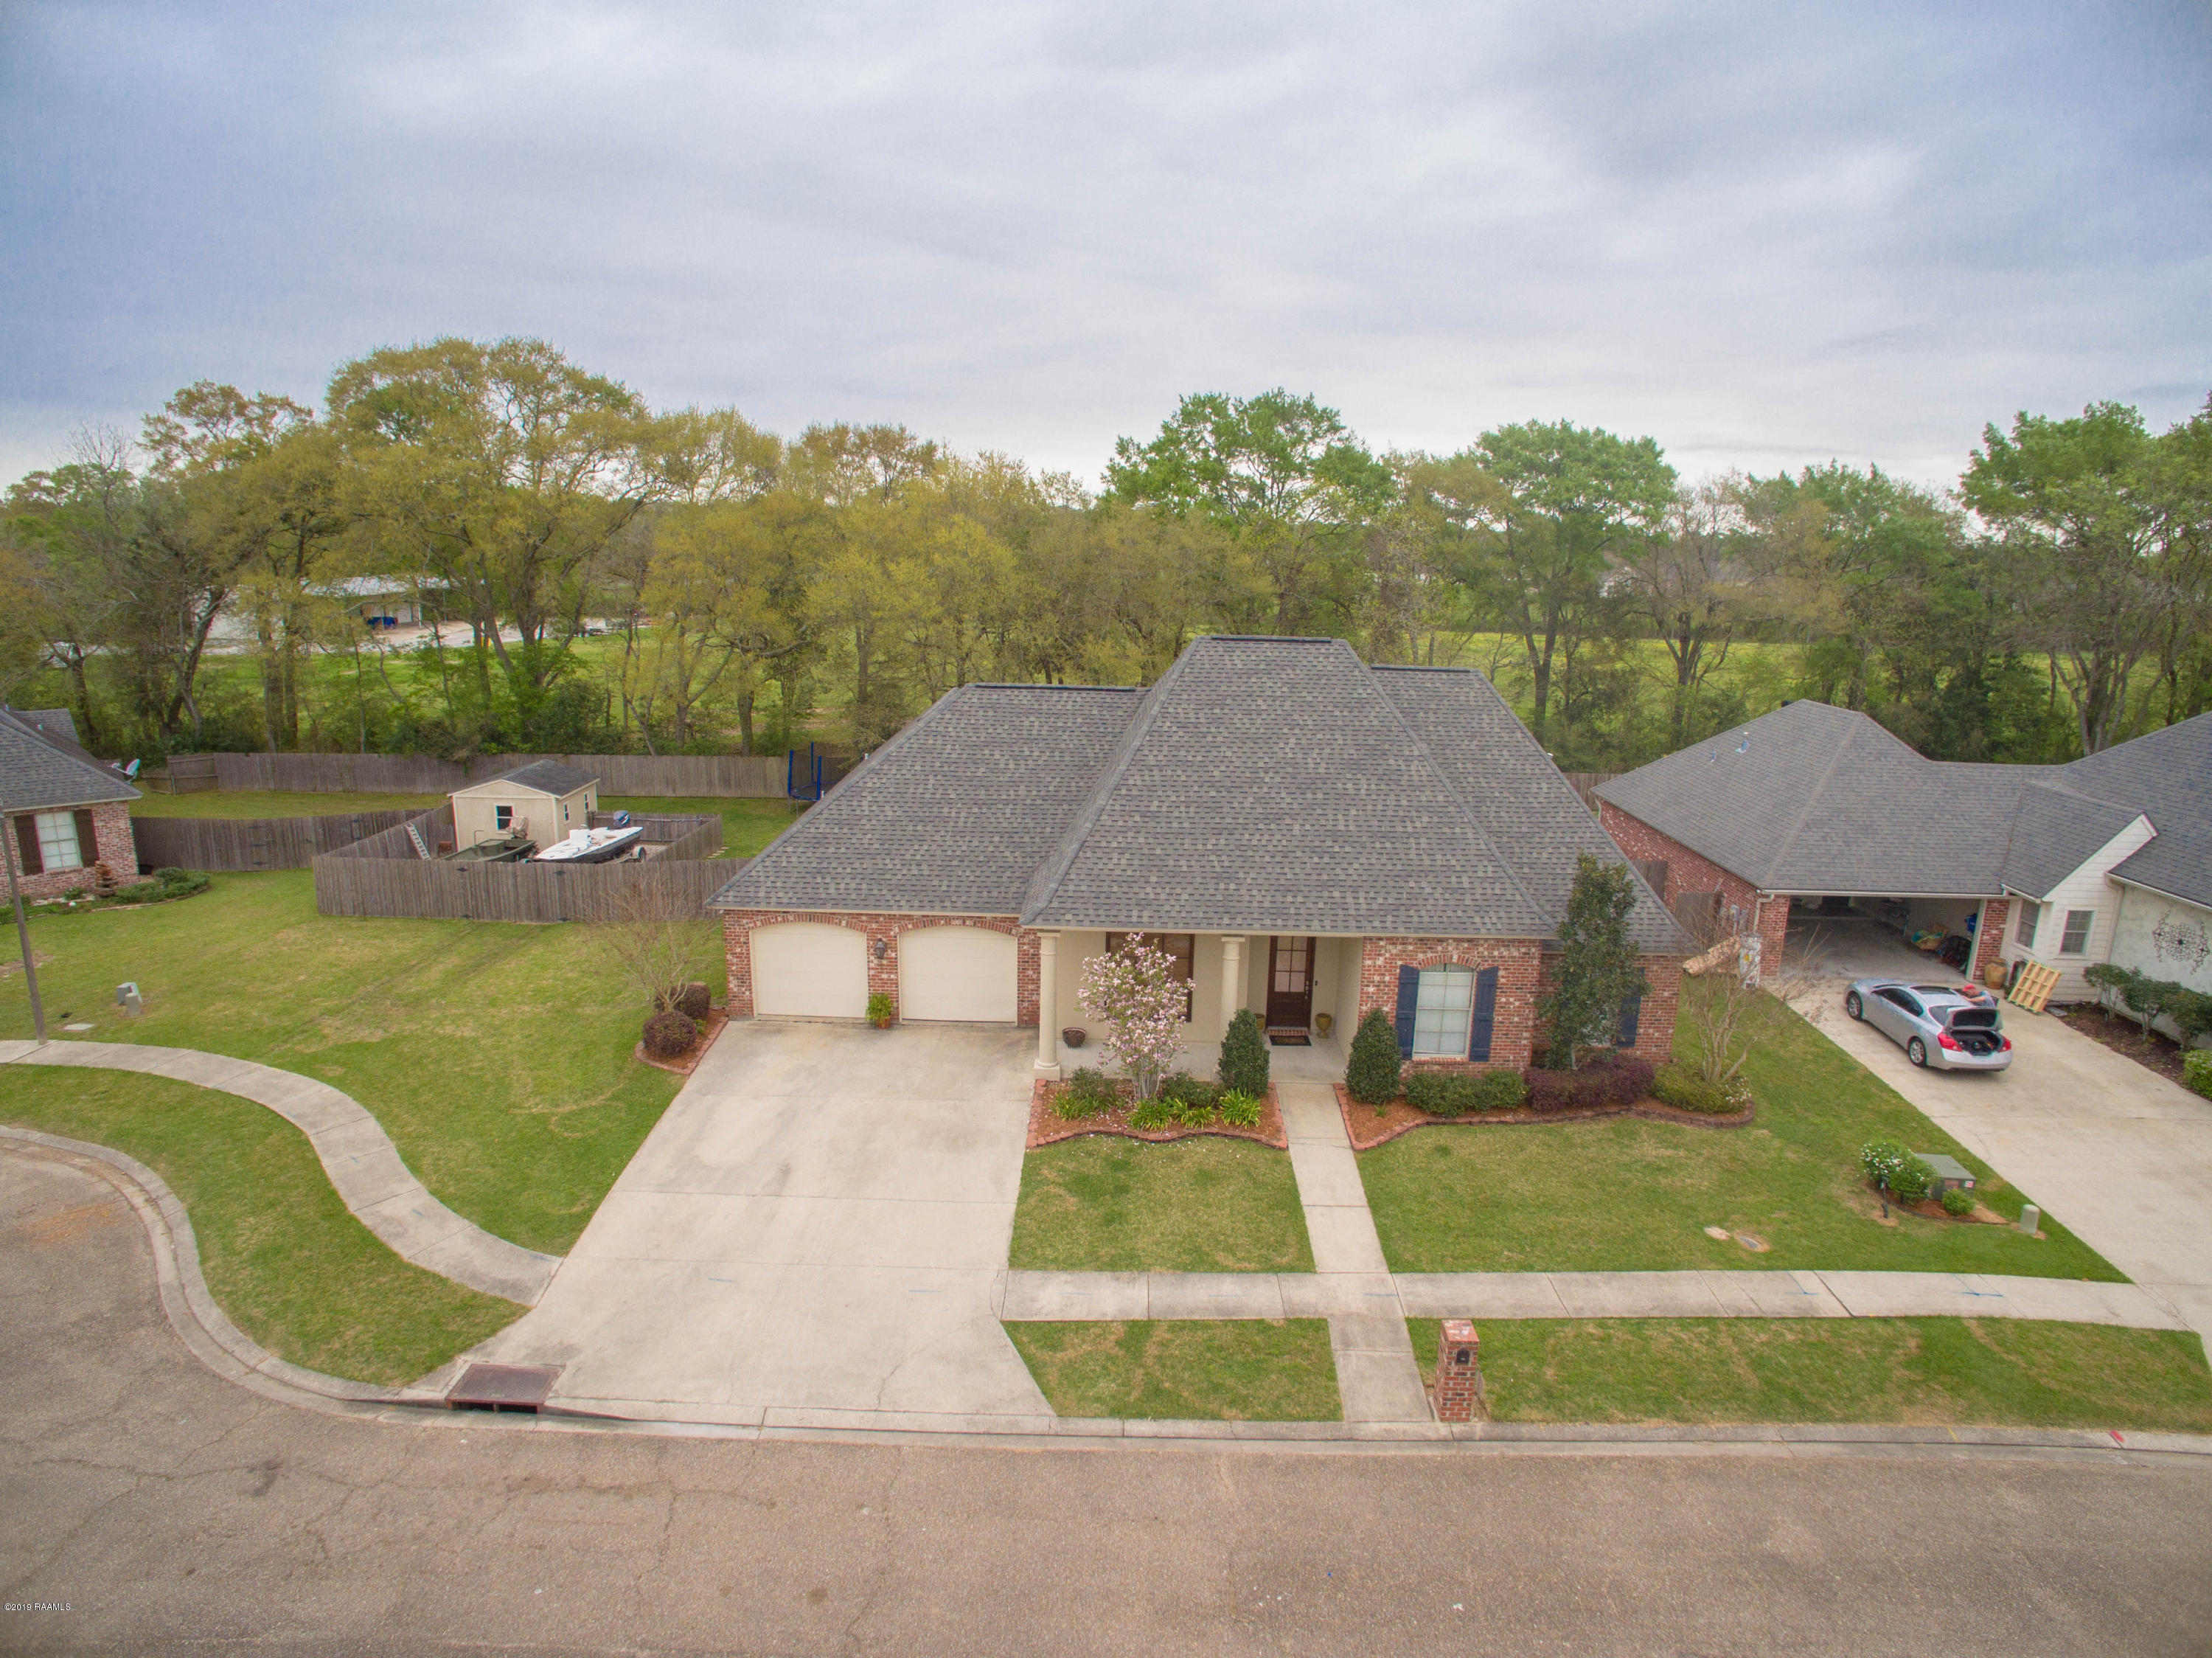 143 Willow Bend, Youngsville, LA 70592 Photo #2